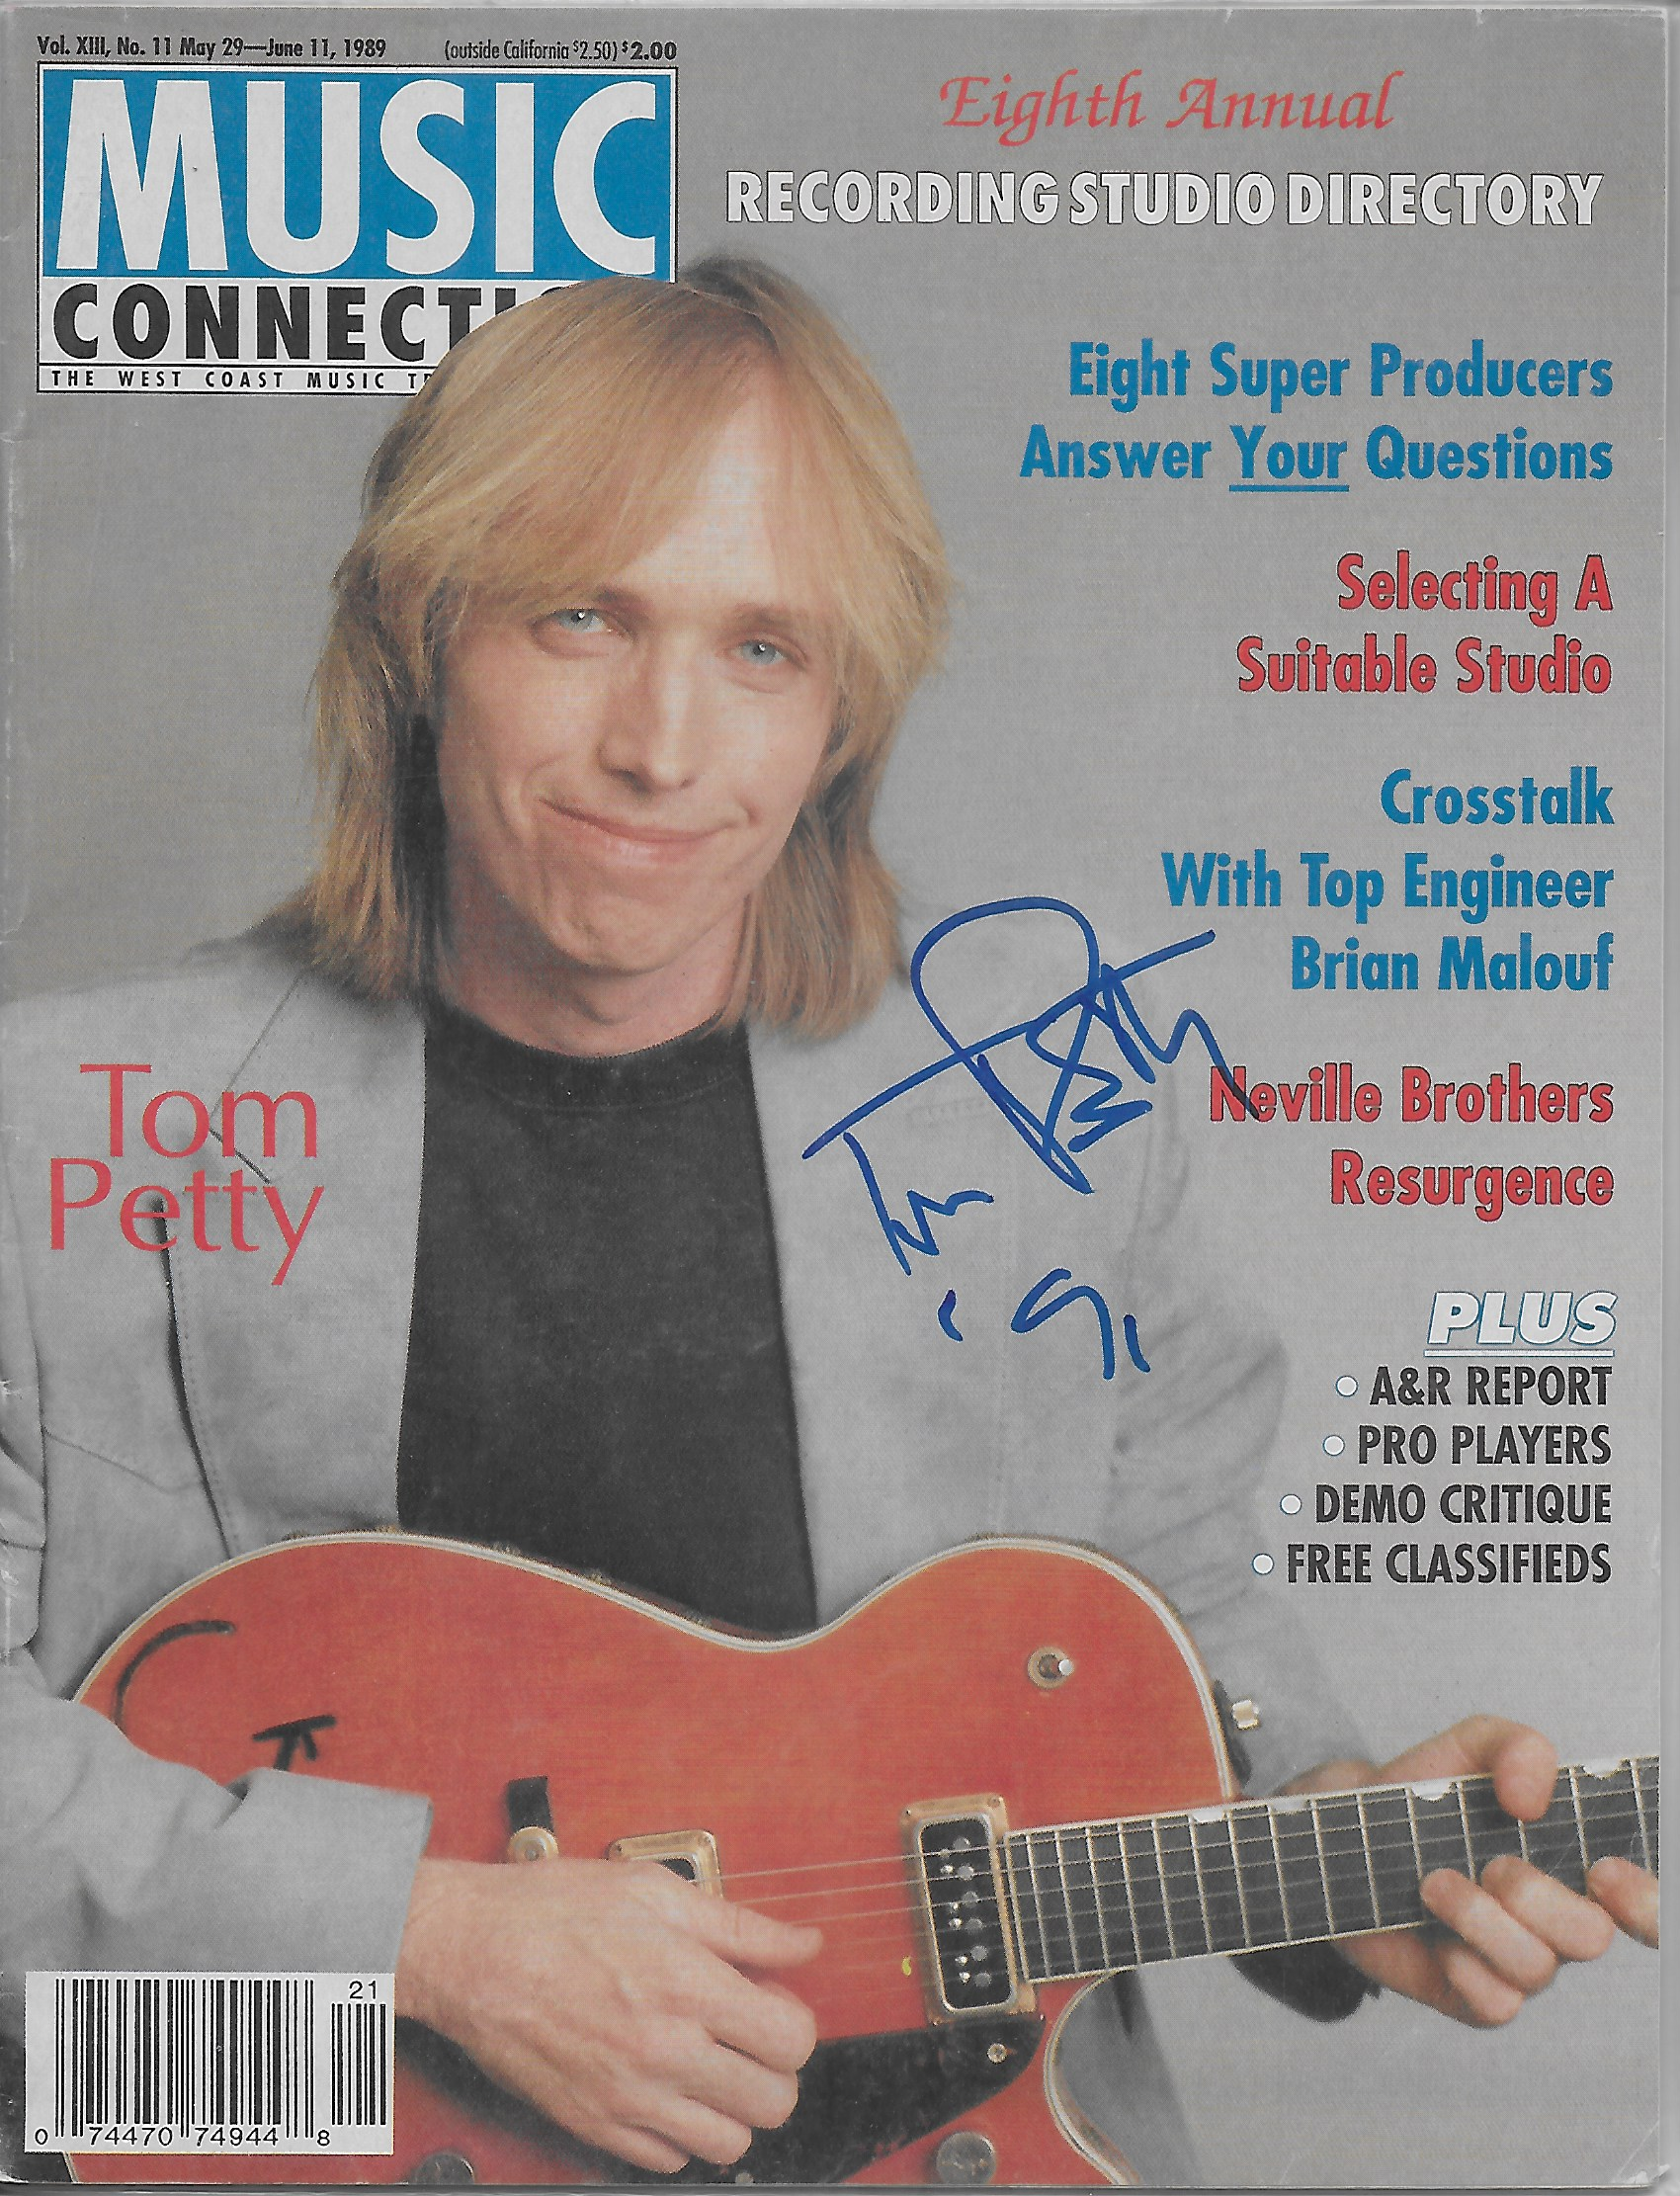 Tom Petty Photo #3